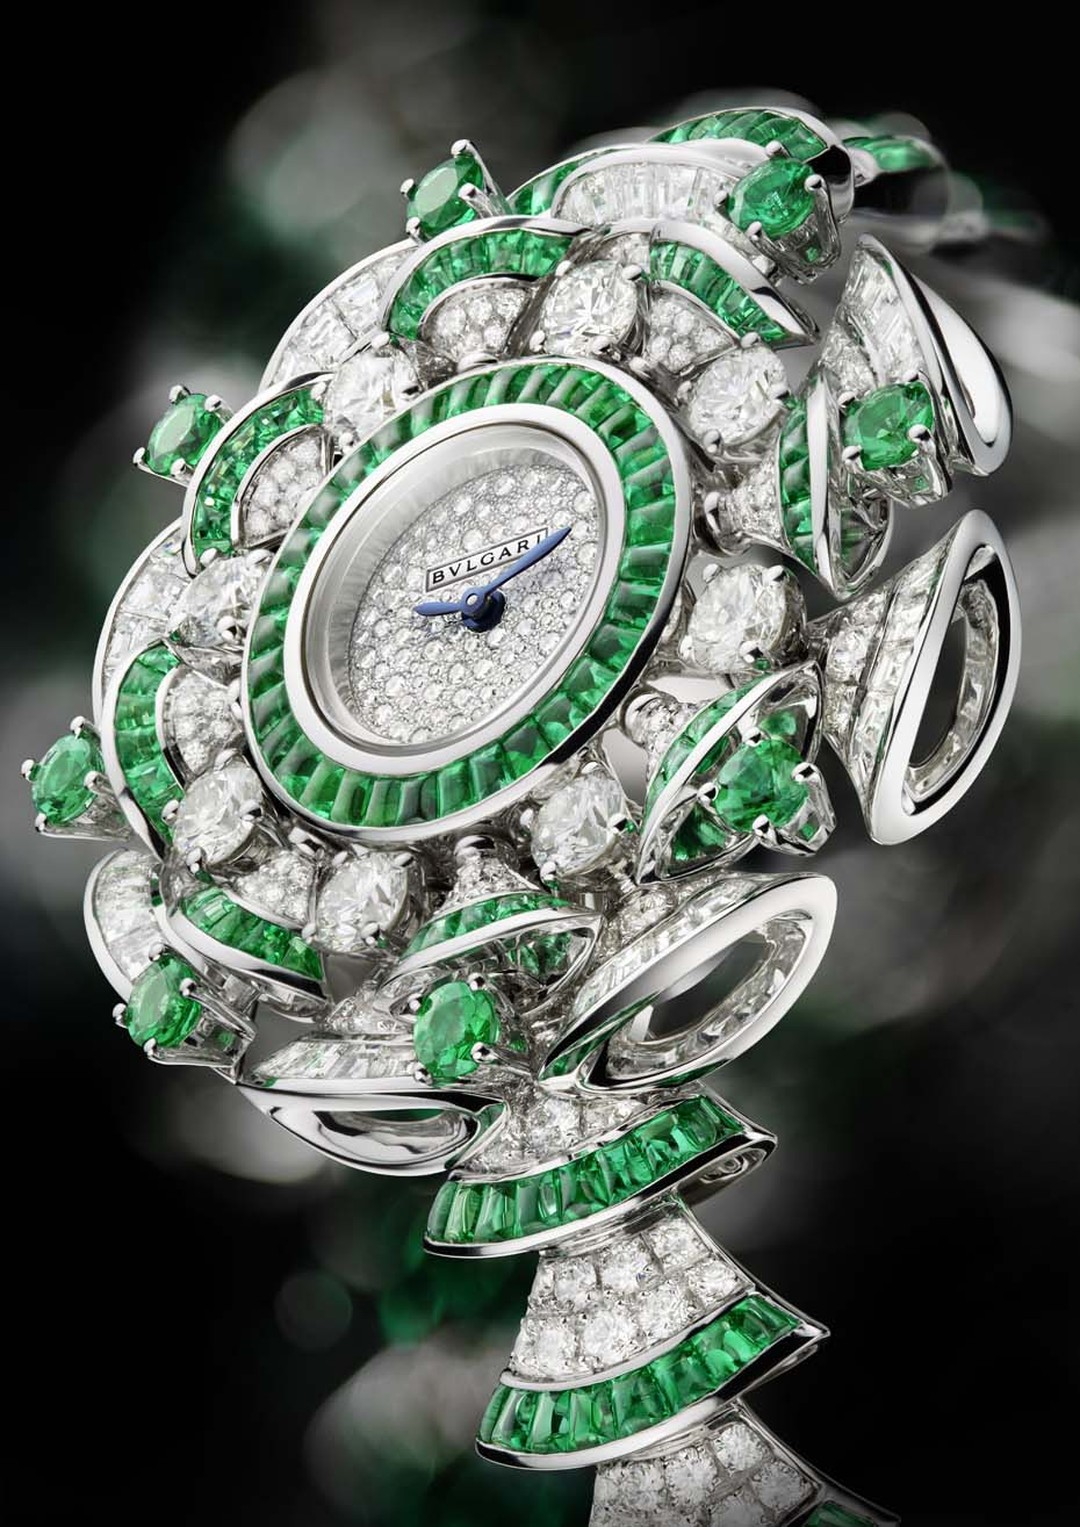 Bulgari Diva watch with emeralds and diamonds.